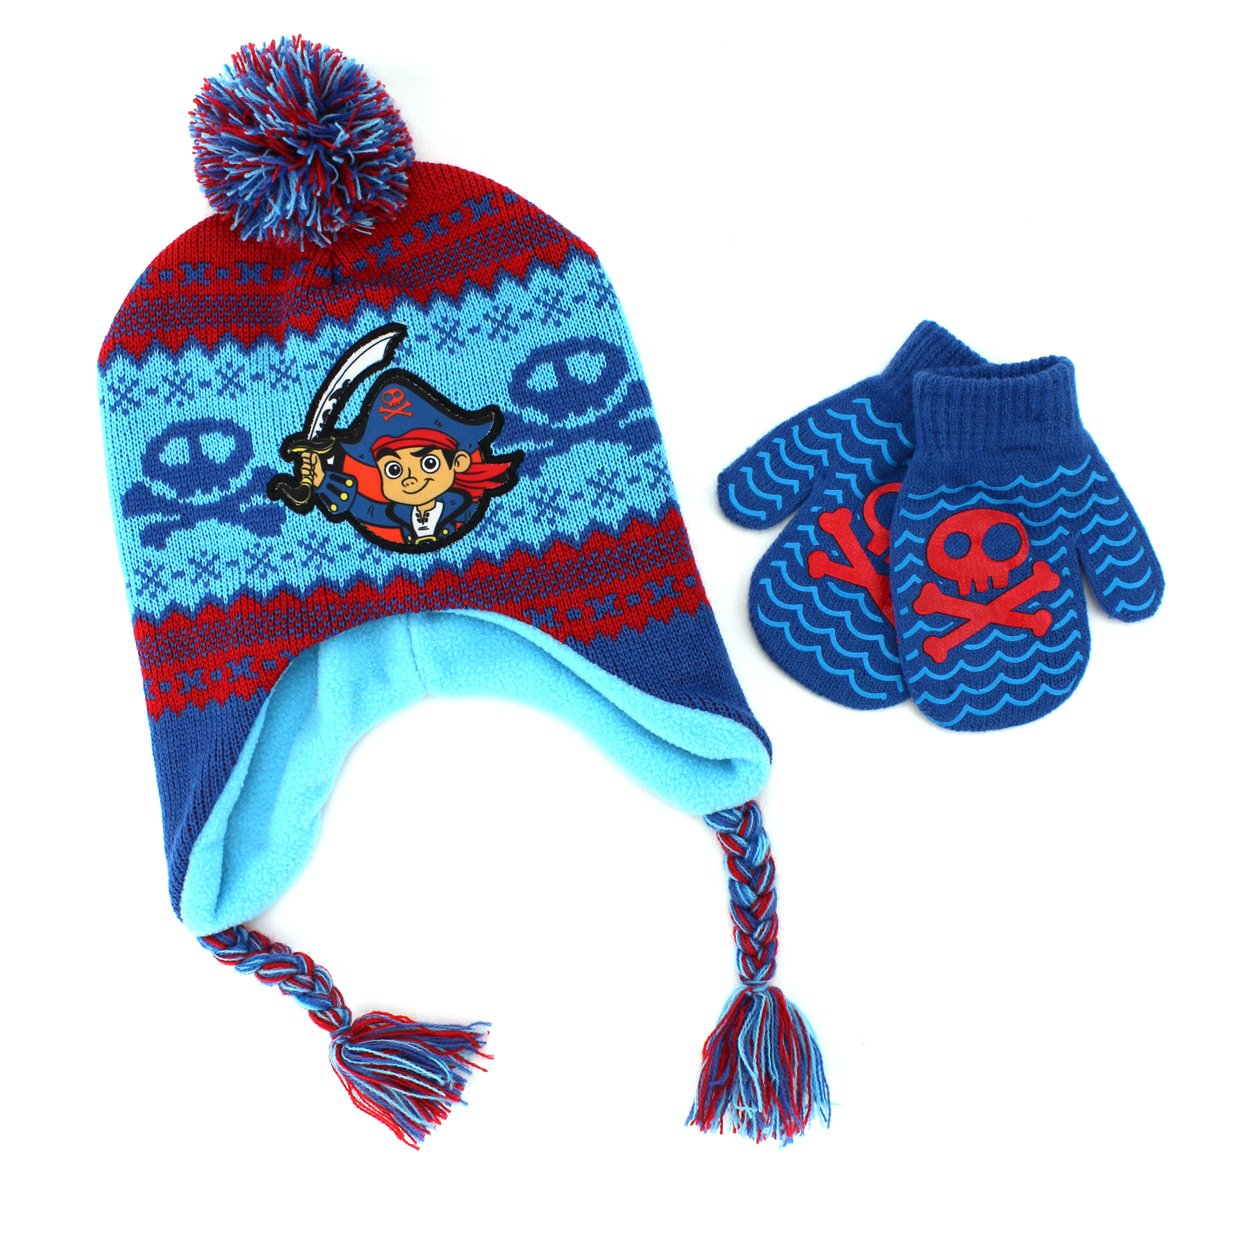 Disney Nickelodeon Boys Girls Hat and Mittens Set (Toddler/Little Kid) manufacturer